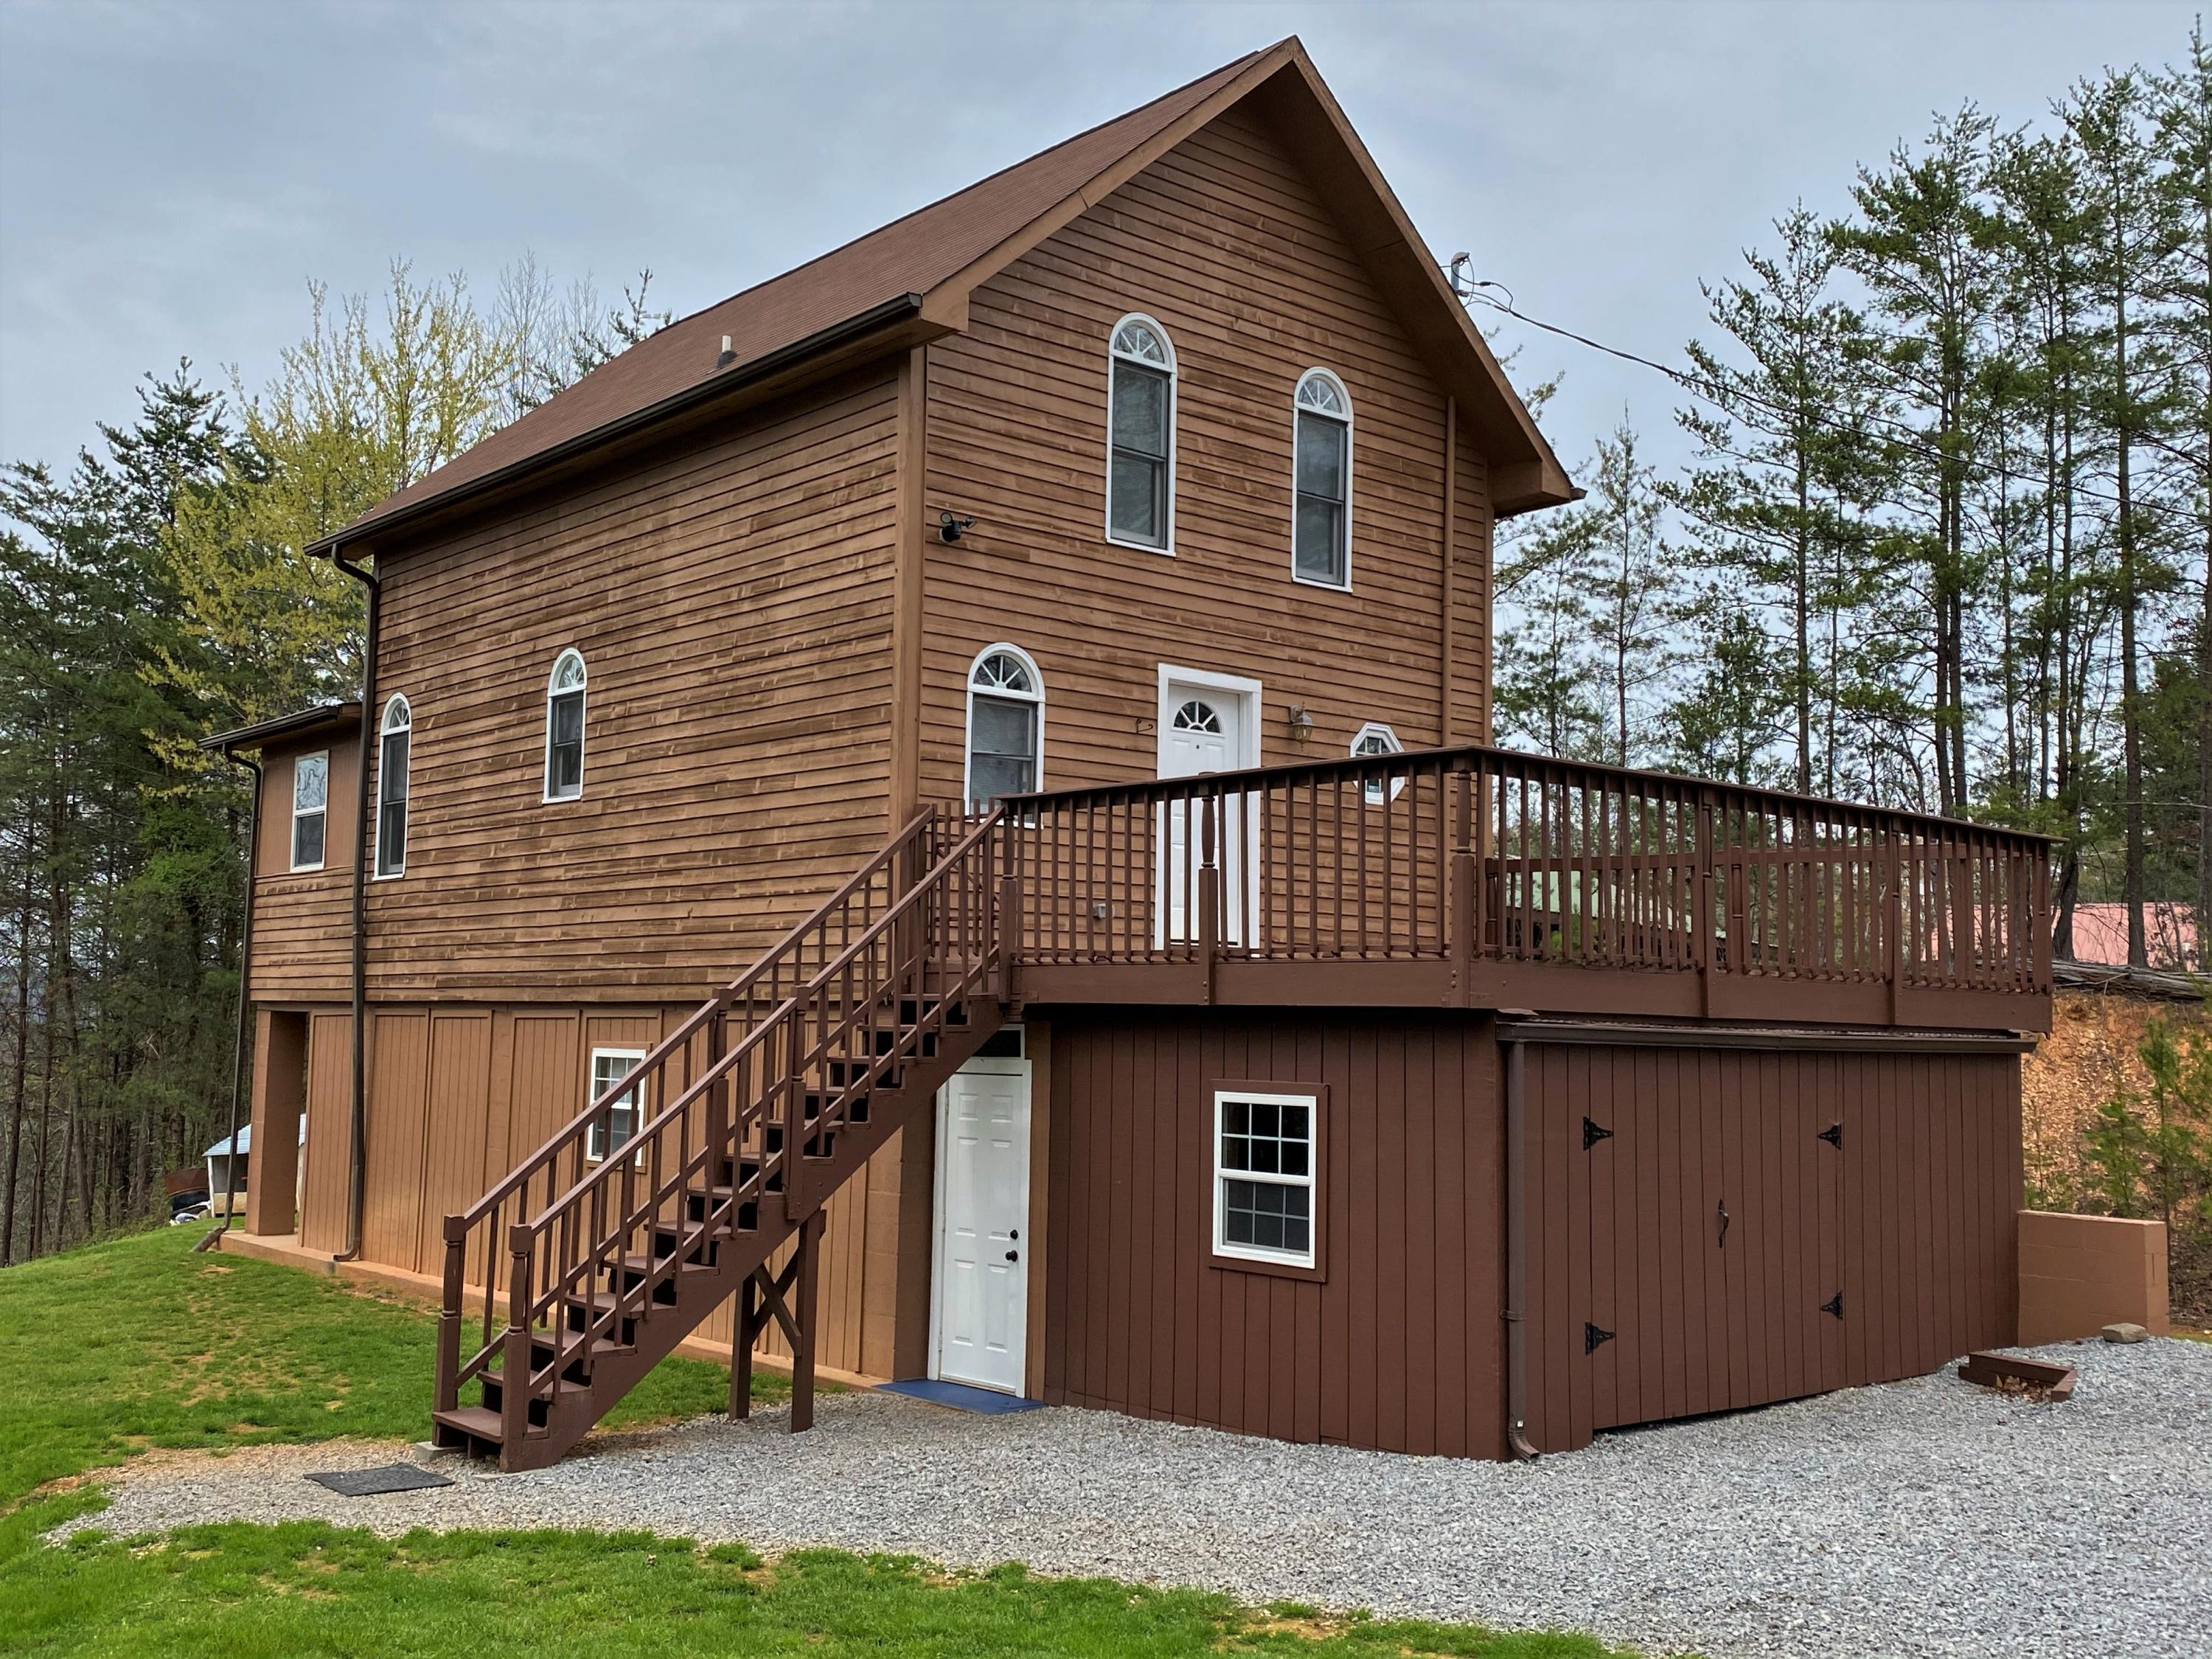 3657 Old Mountain Rd, Sevierville, Tennessee 37876, 1 Bedroom Bedrooms, ,1 BathroomBathrooms,Single Family,For Sale,Old Mountain,1112687